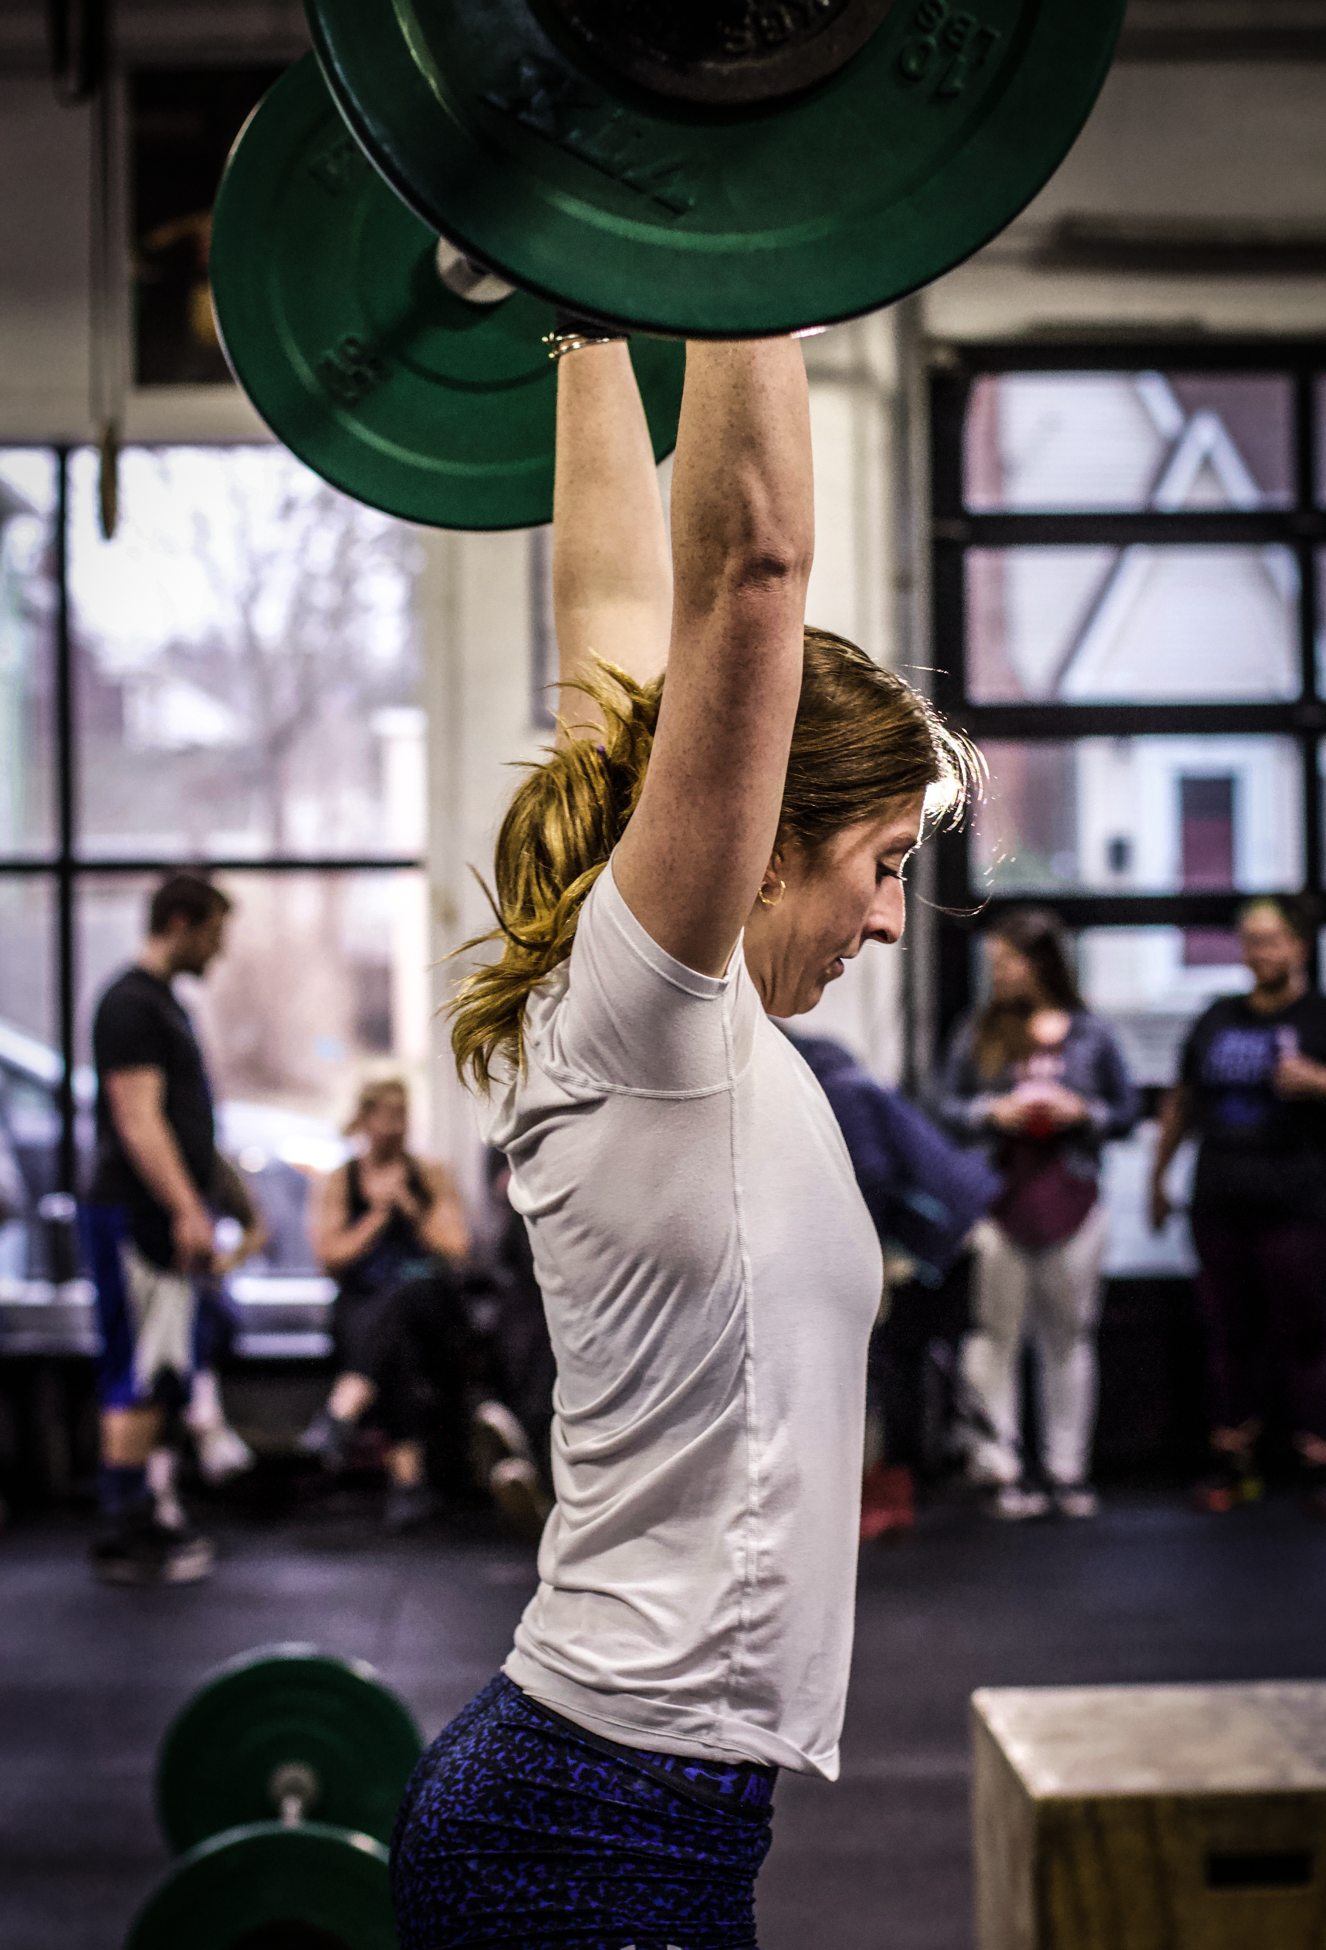 PVCF athlete, Michelle Lafond cycles through a set of thrusters;) What's your strategy when approaching a set of 50?